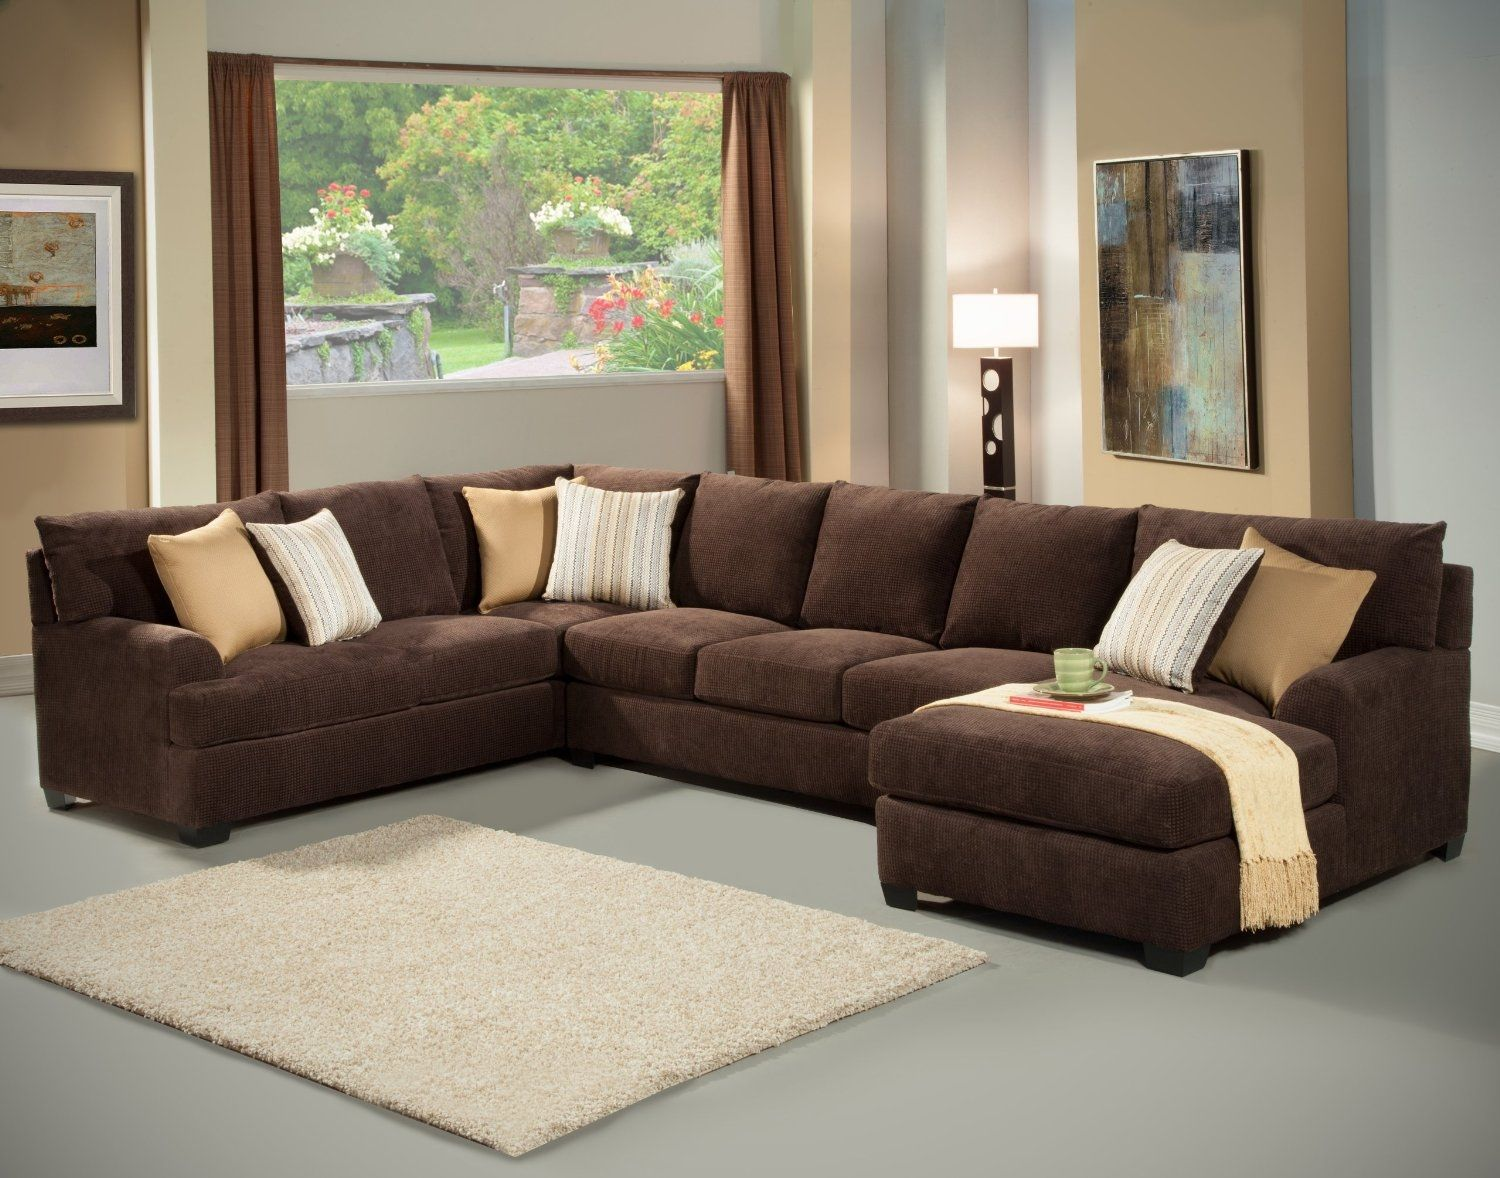 sensational high back sectional sofas portrait-Latest High Back Sectional sofas Décor